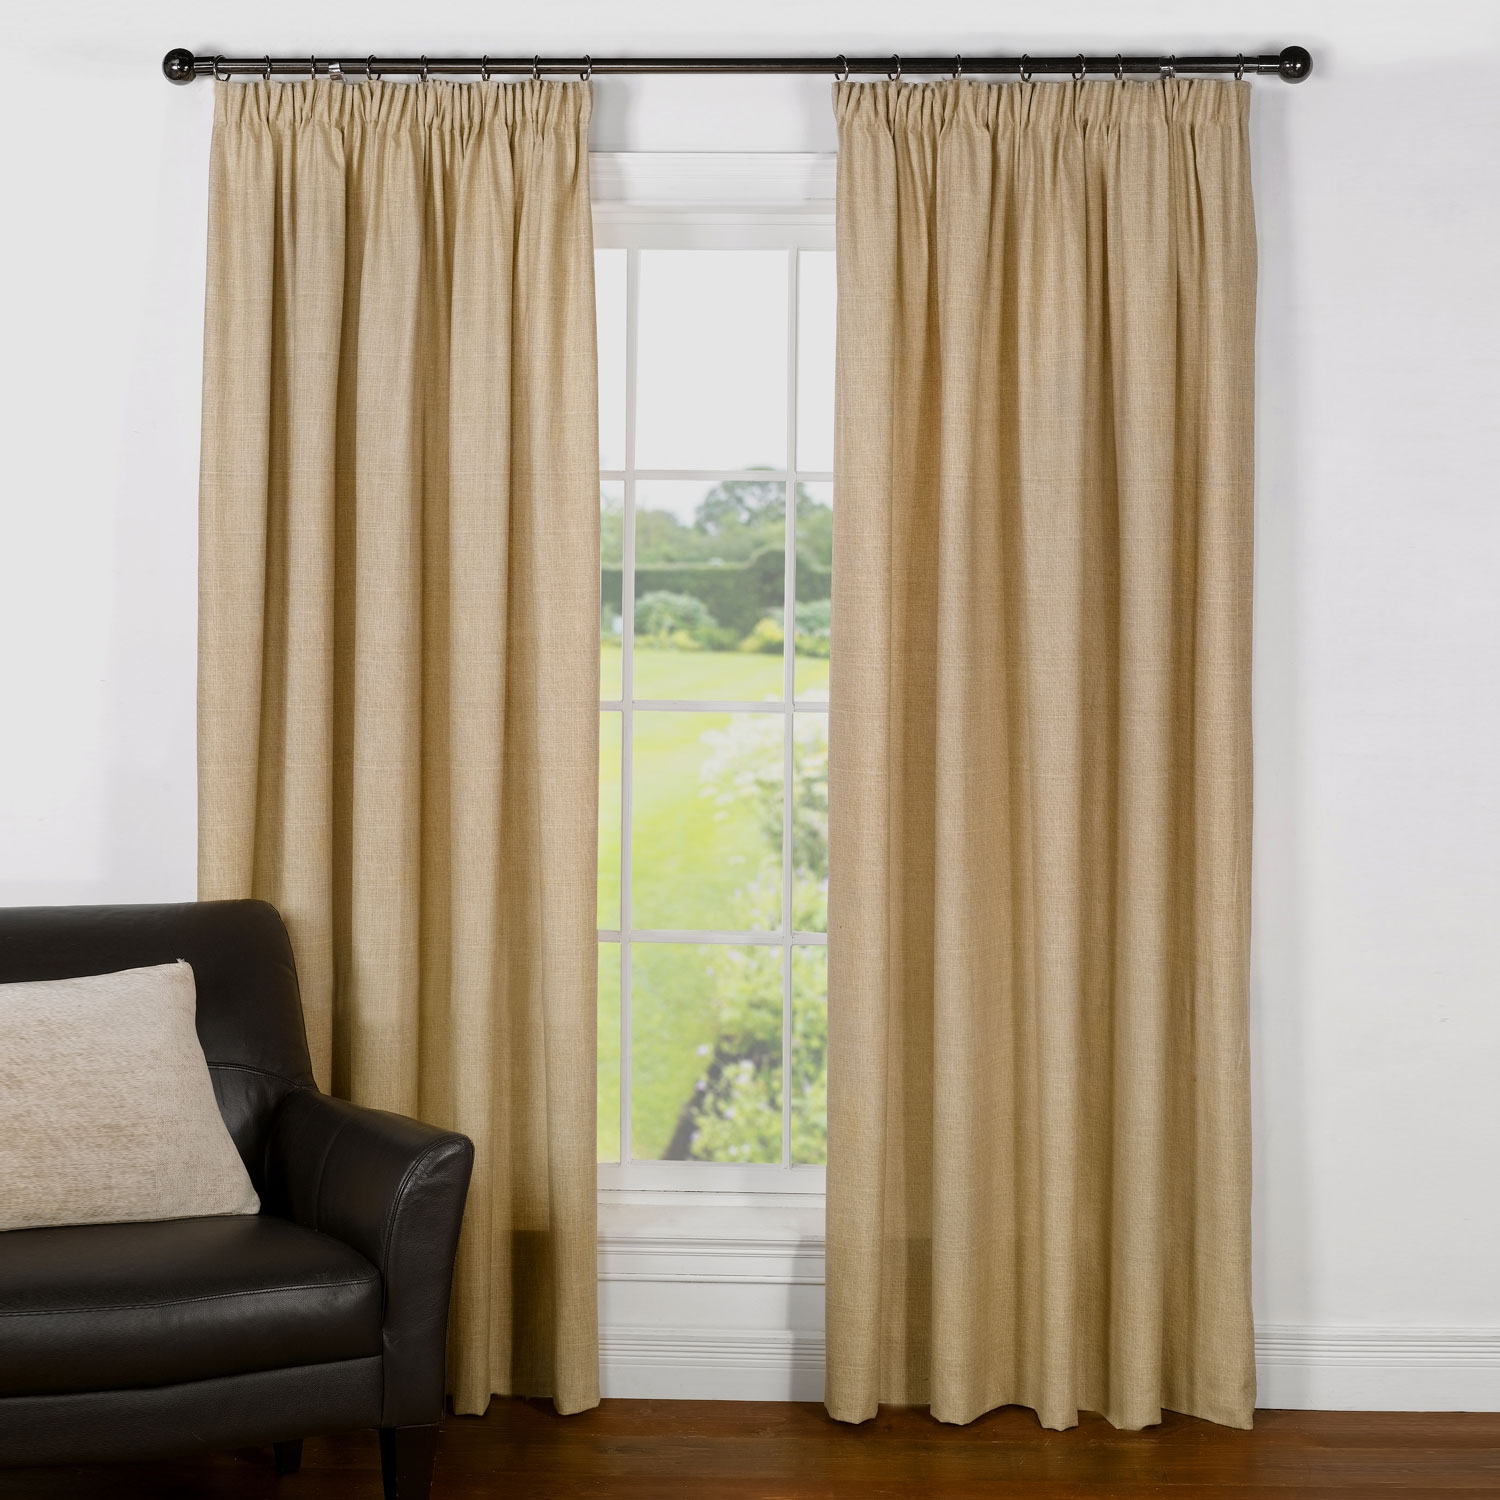 Pinch Pleat Curtains Cream Pinch Pleat Curtains Cotton Pinch Pleat In Lined Cotton Curtains (Image 12 of 15)